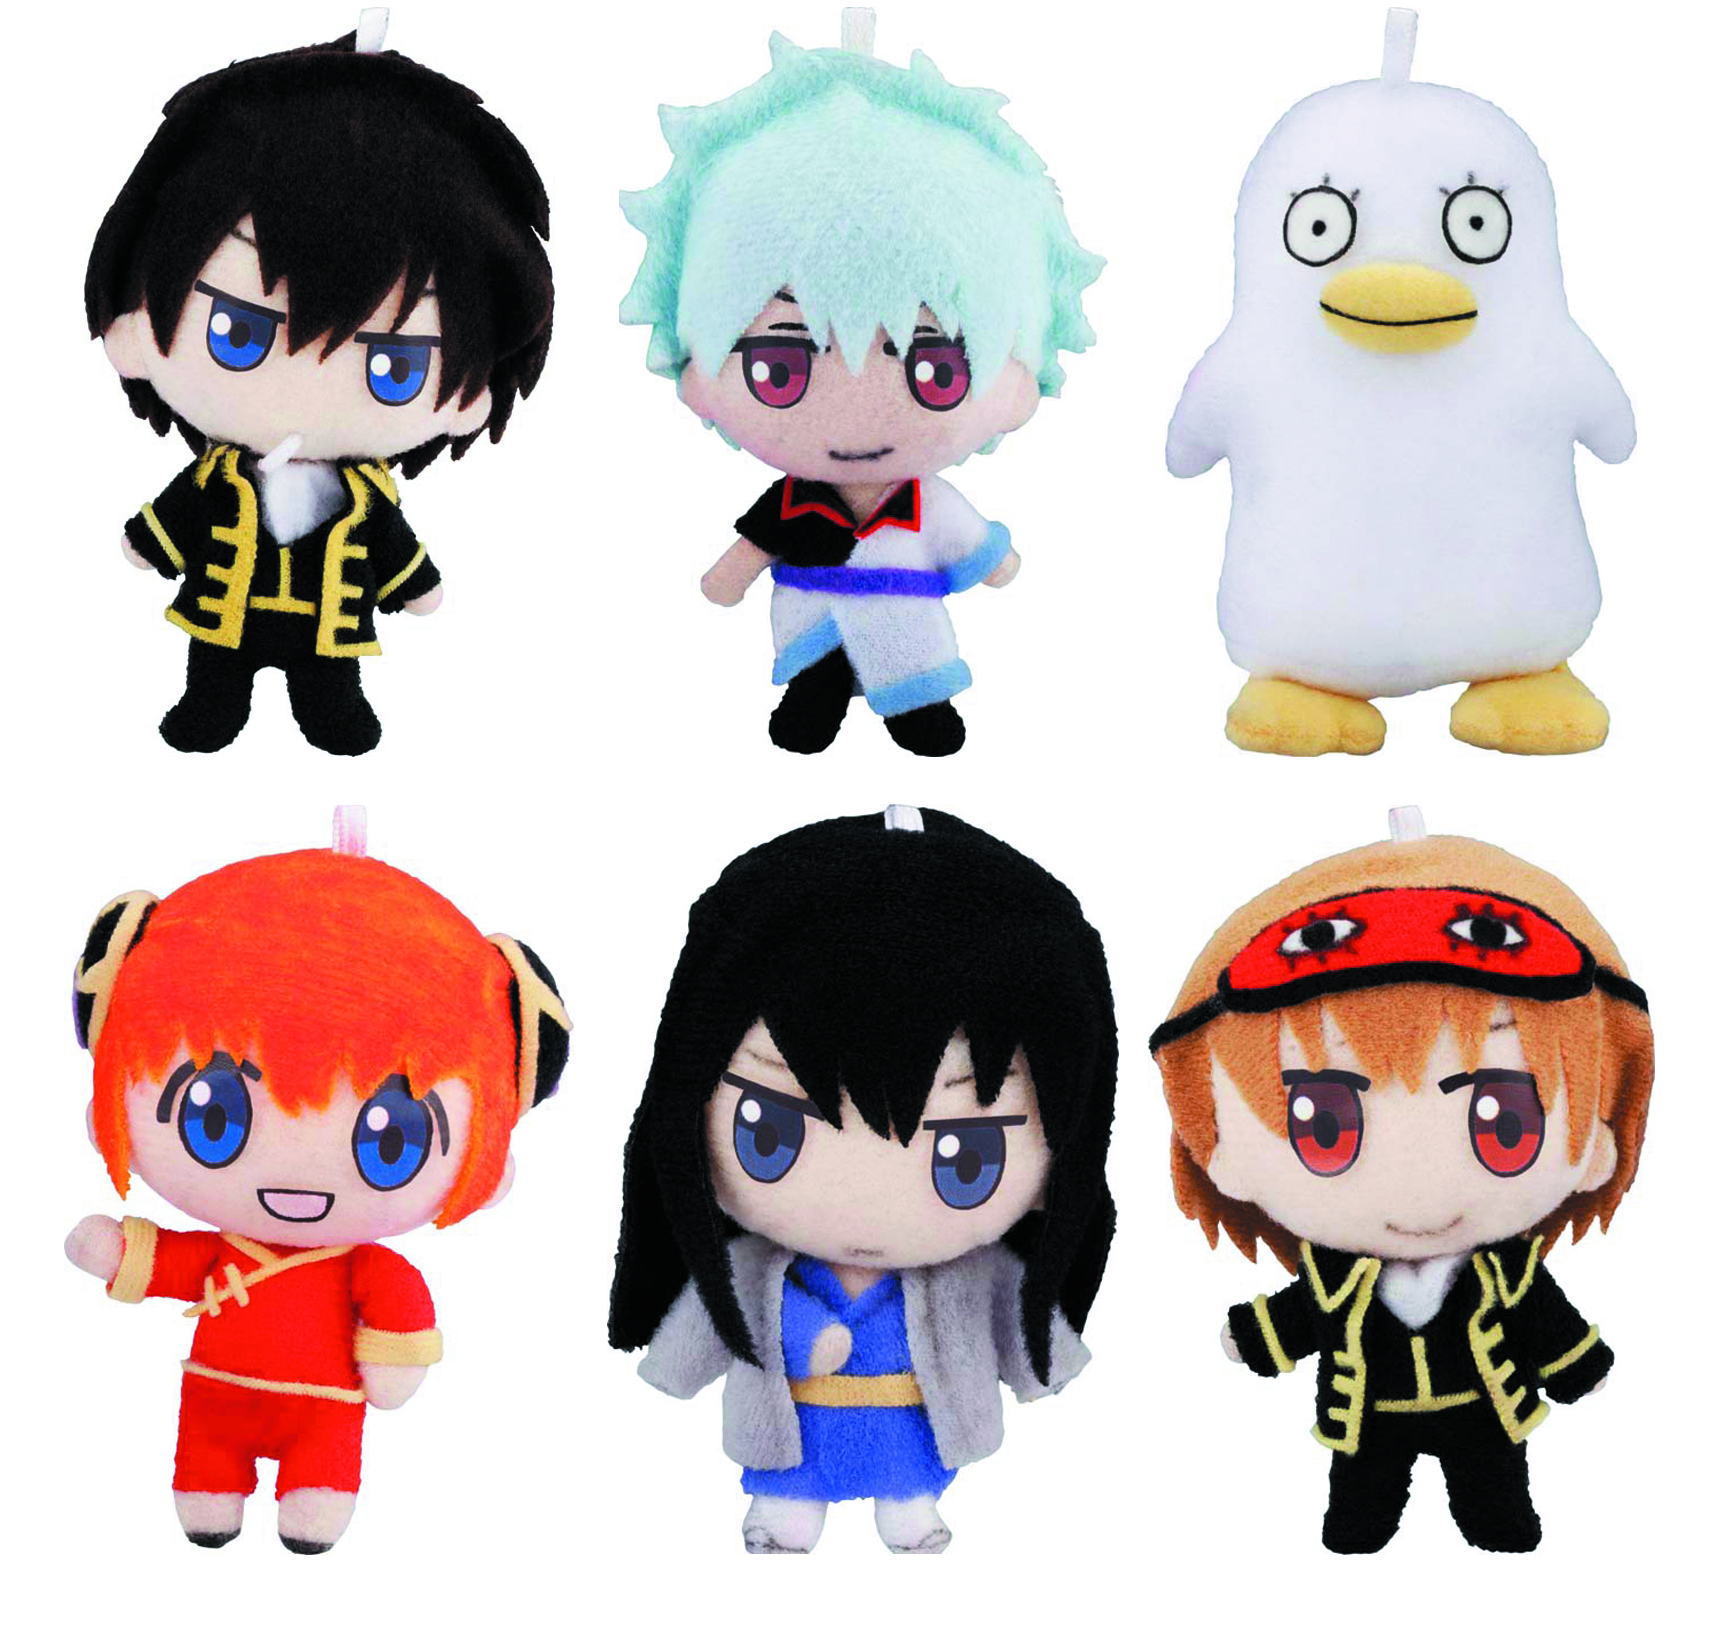 GINTAMA GURUMITZ MINI PLUSH 6PC DS